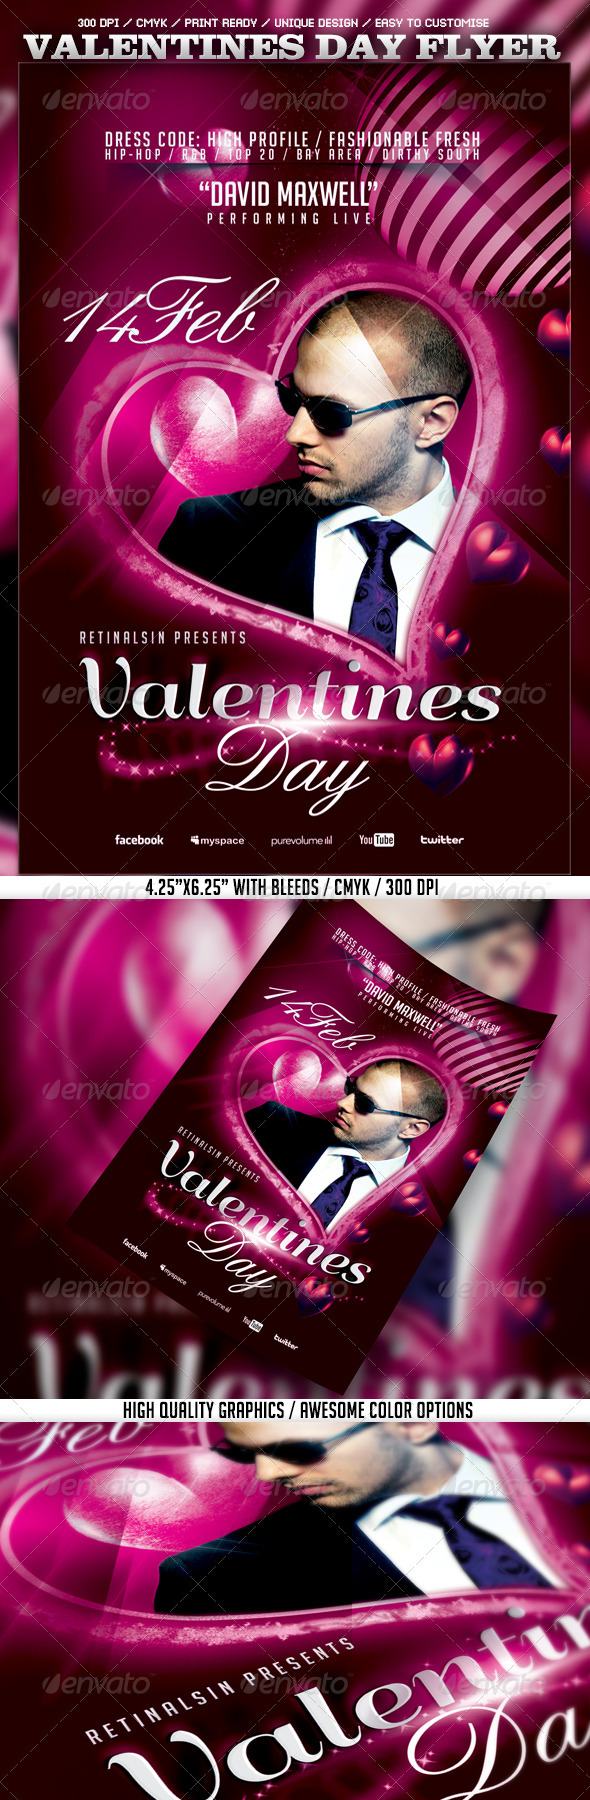 Valentines Day Flyer Template - Events Flyers